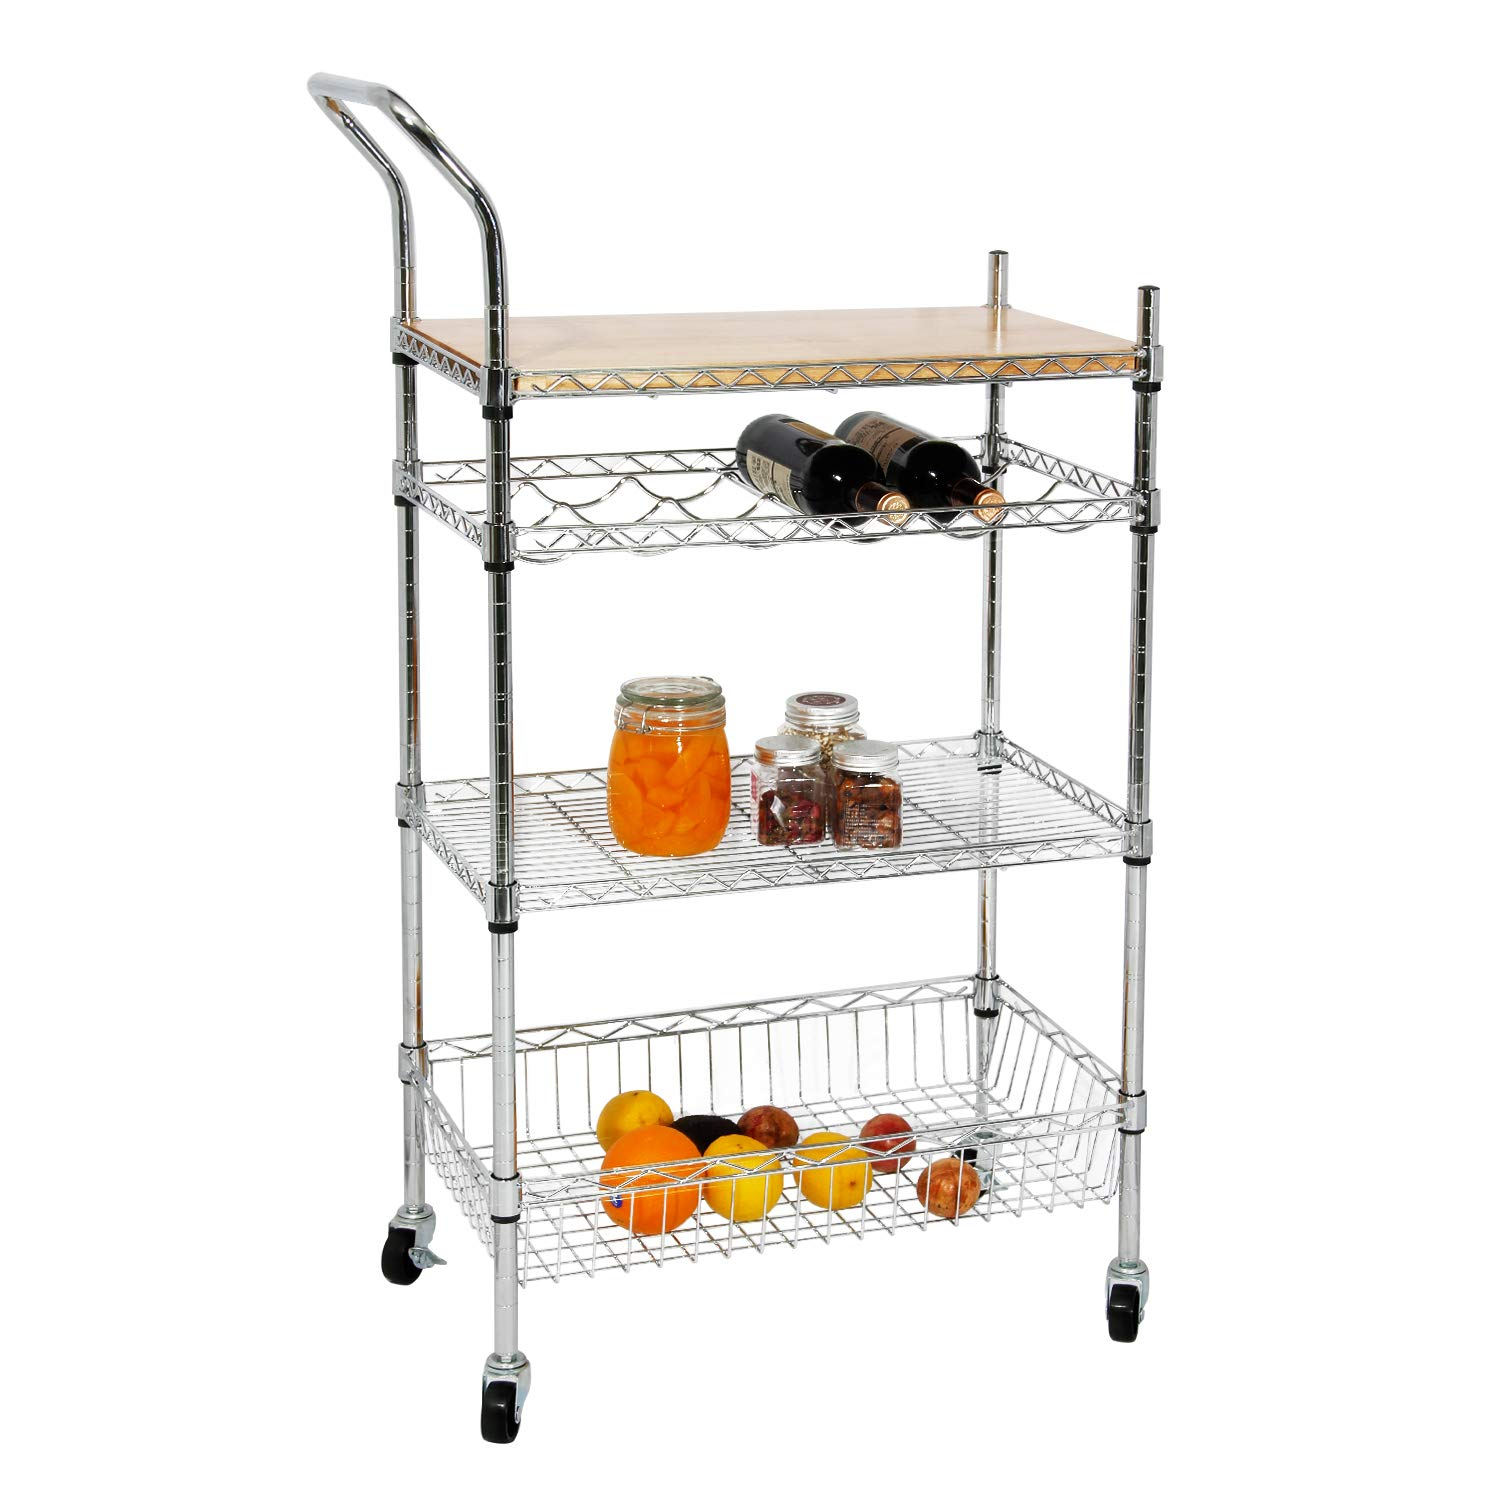 Soges Kitchen Shelf Wheels, Sturdy Rolling Cart/Shelving Unit/Storage Shelf/Trolley/Units Kitchen, Home, Office, Bathroom,KS-ZSCS-03-CA PRC